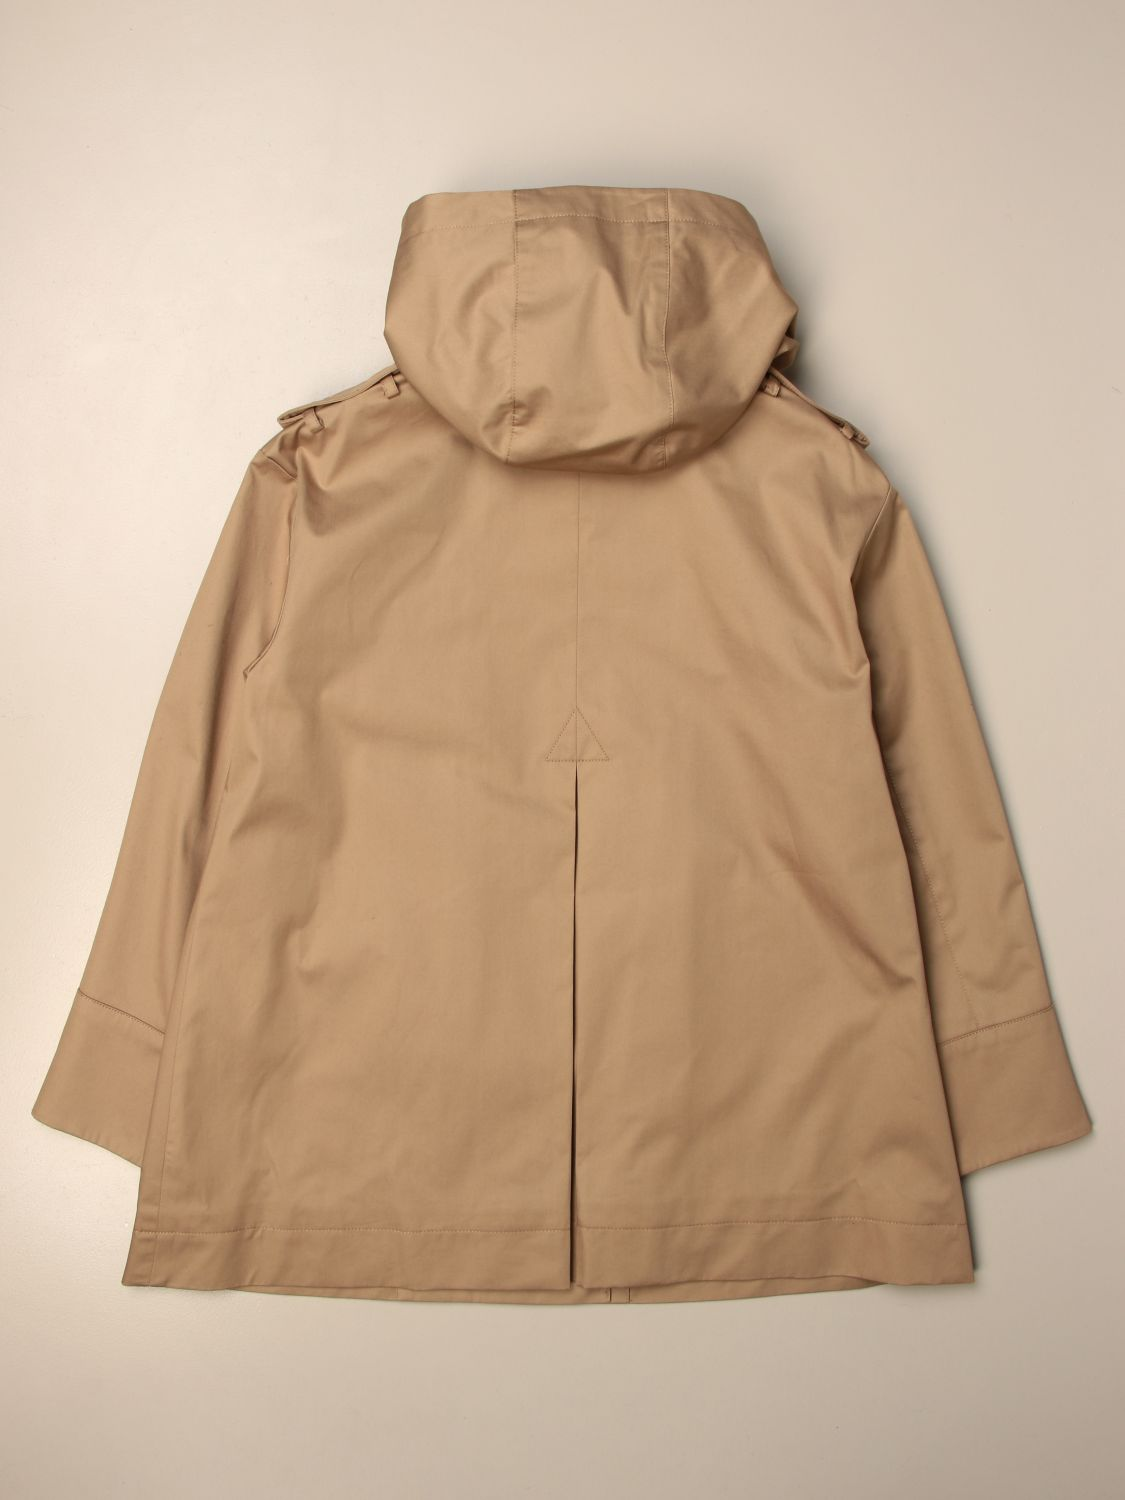 Coat Burberry: Burberry double-breasted trench coat with hood beige 2